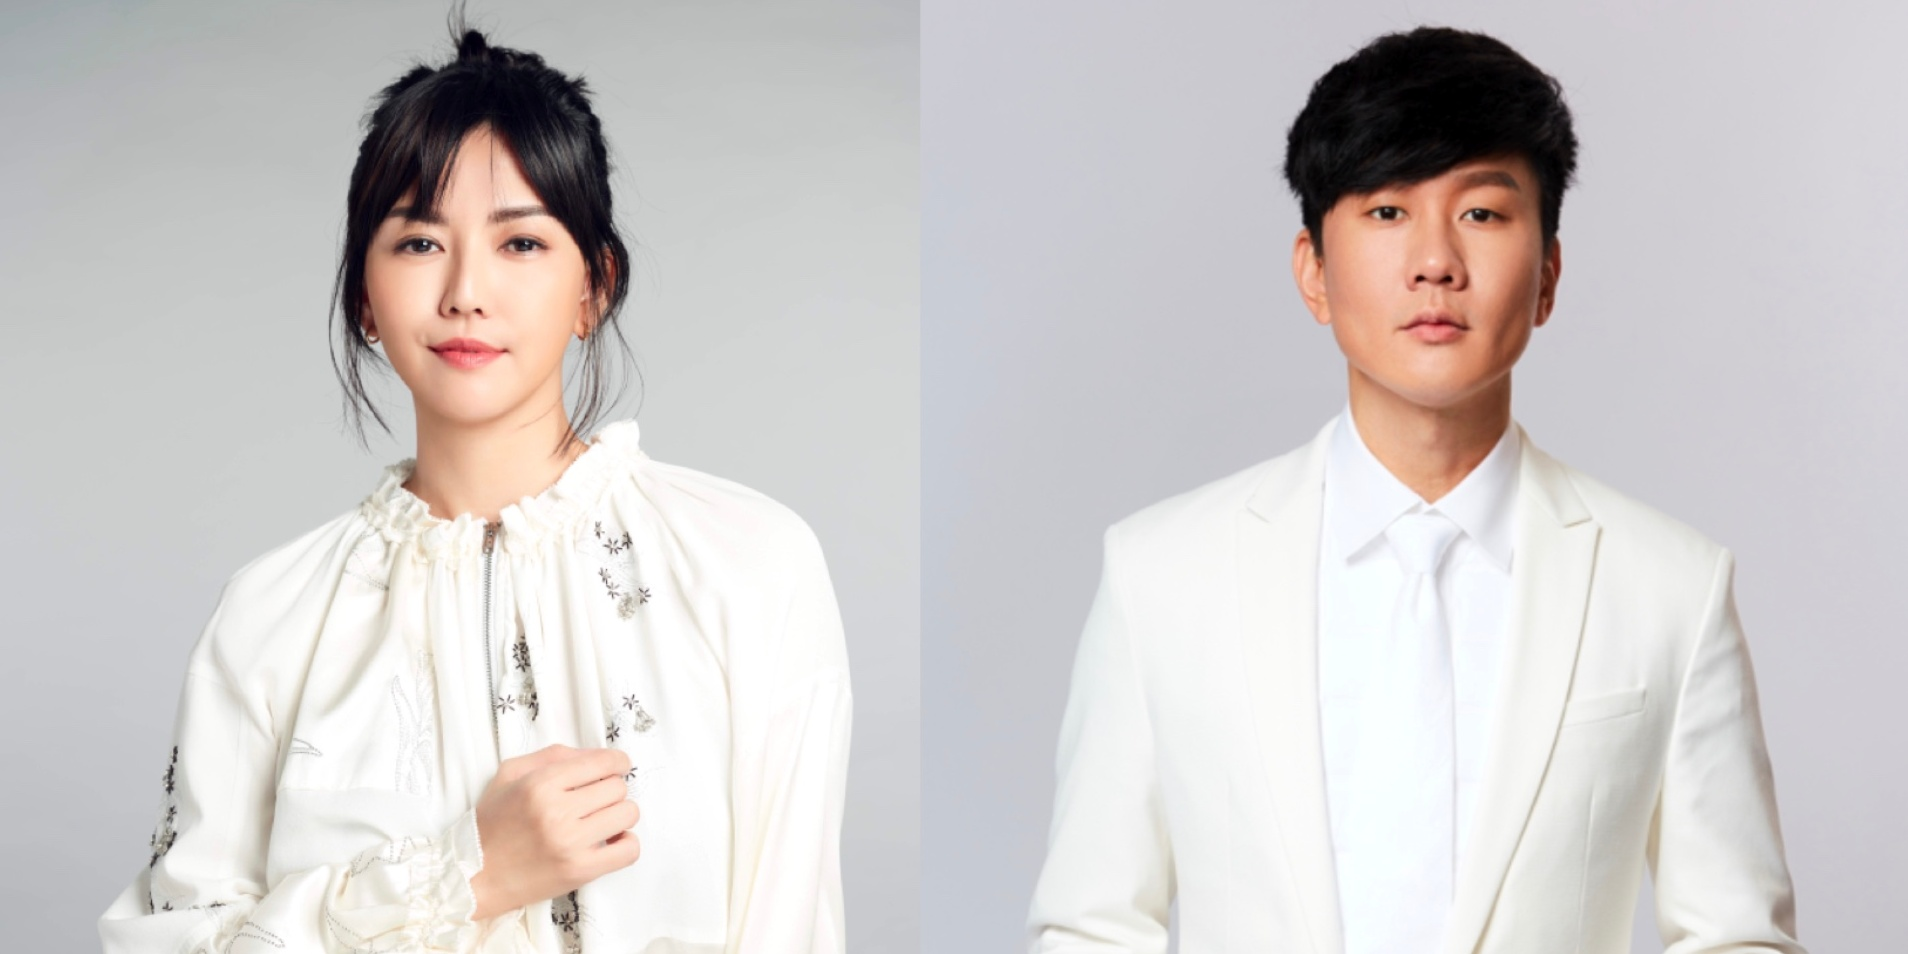 JJ Lin and Stefanie Sun's latest collaboration, 'Stay With You', hopes to 'kindle a sense of togetherness' at NDP 2020